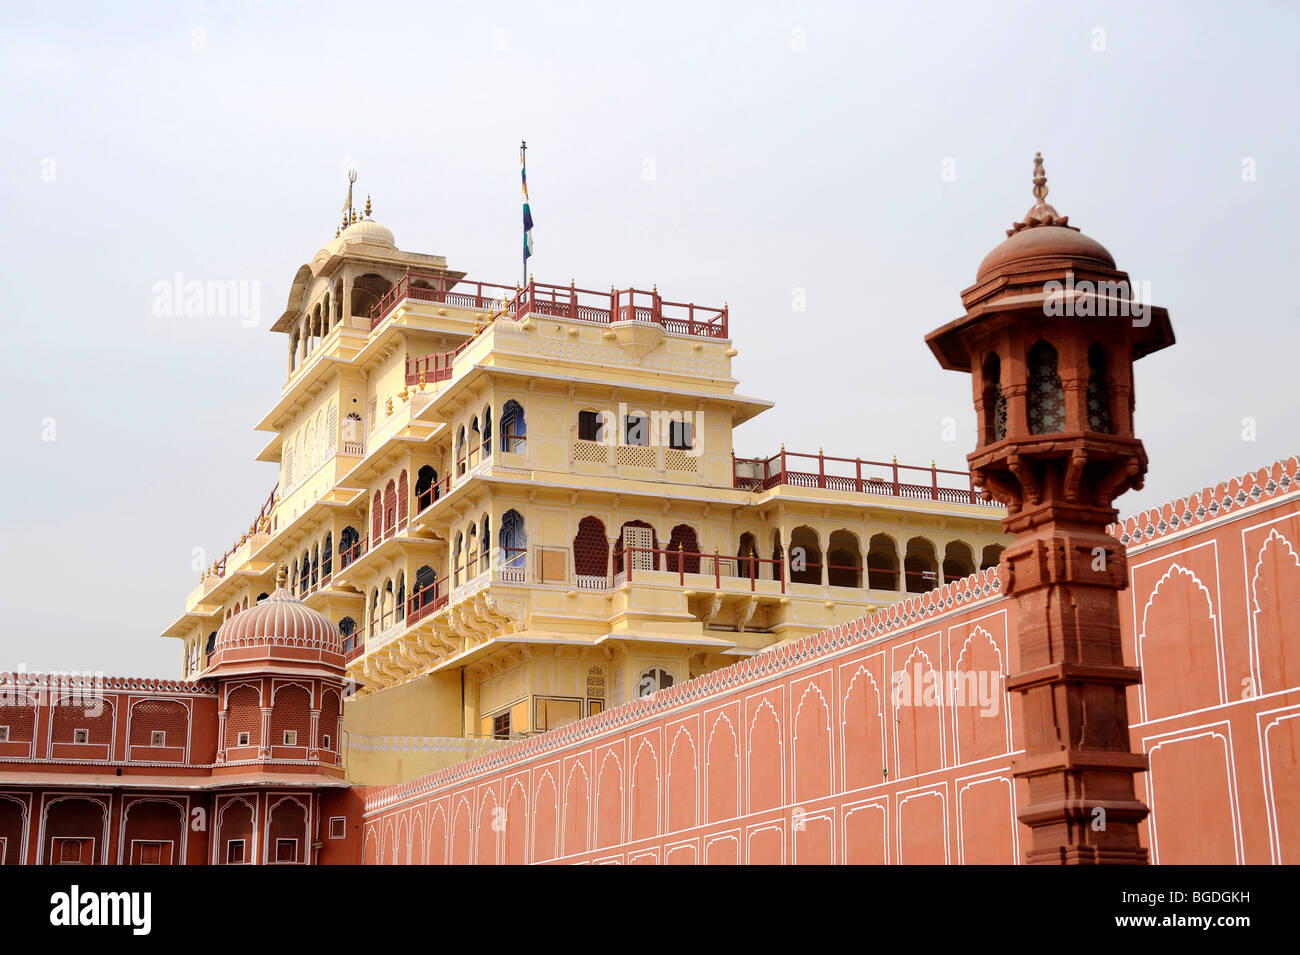 Chandra Mahal, City Palace, Jaipur, Rajasthan, North India, India, South Asia, Asia Stock Photo